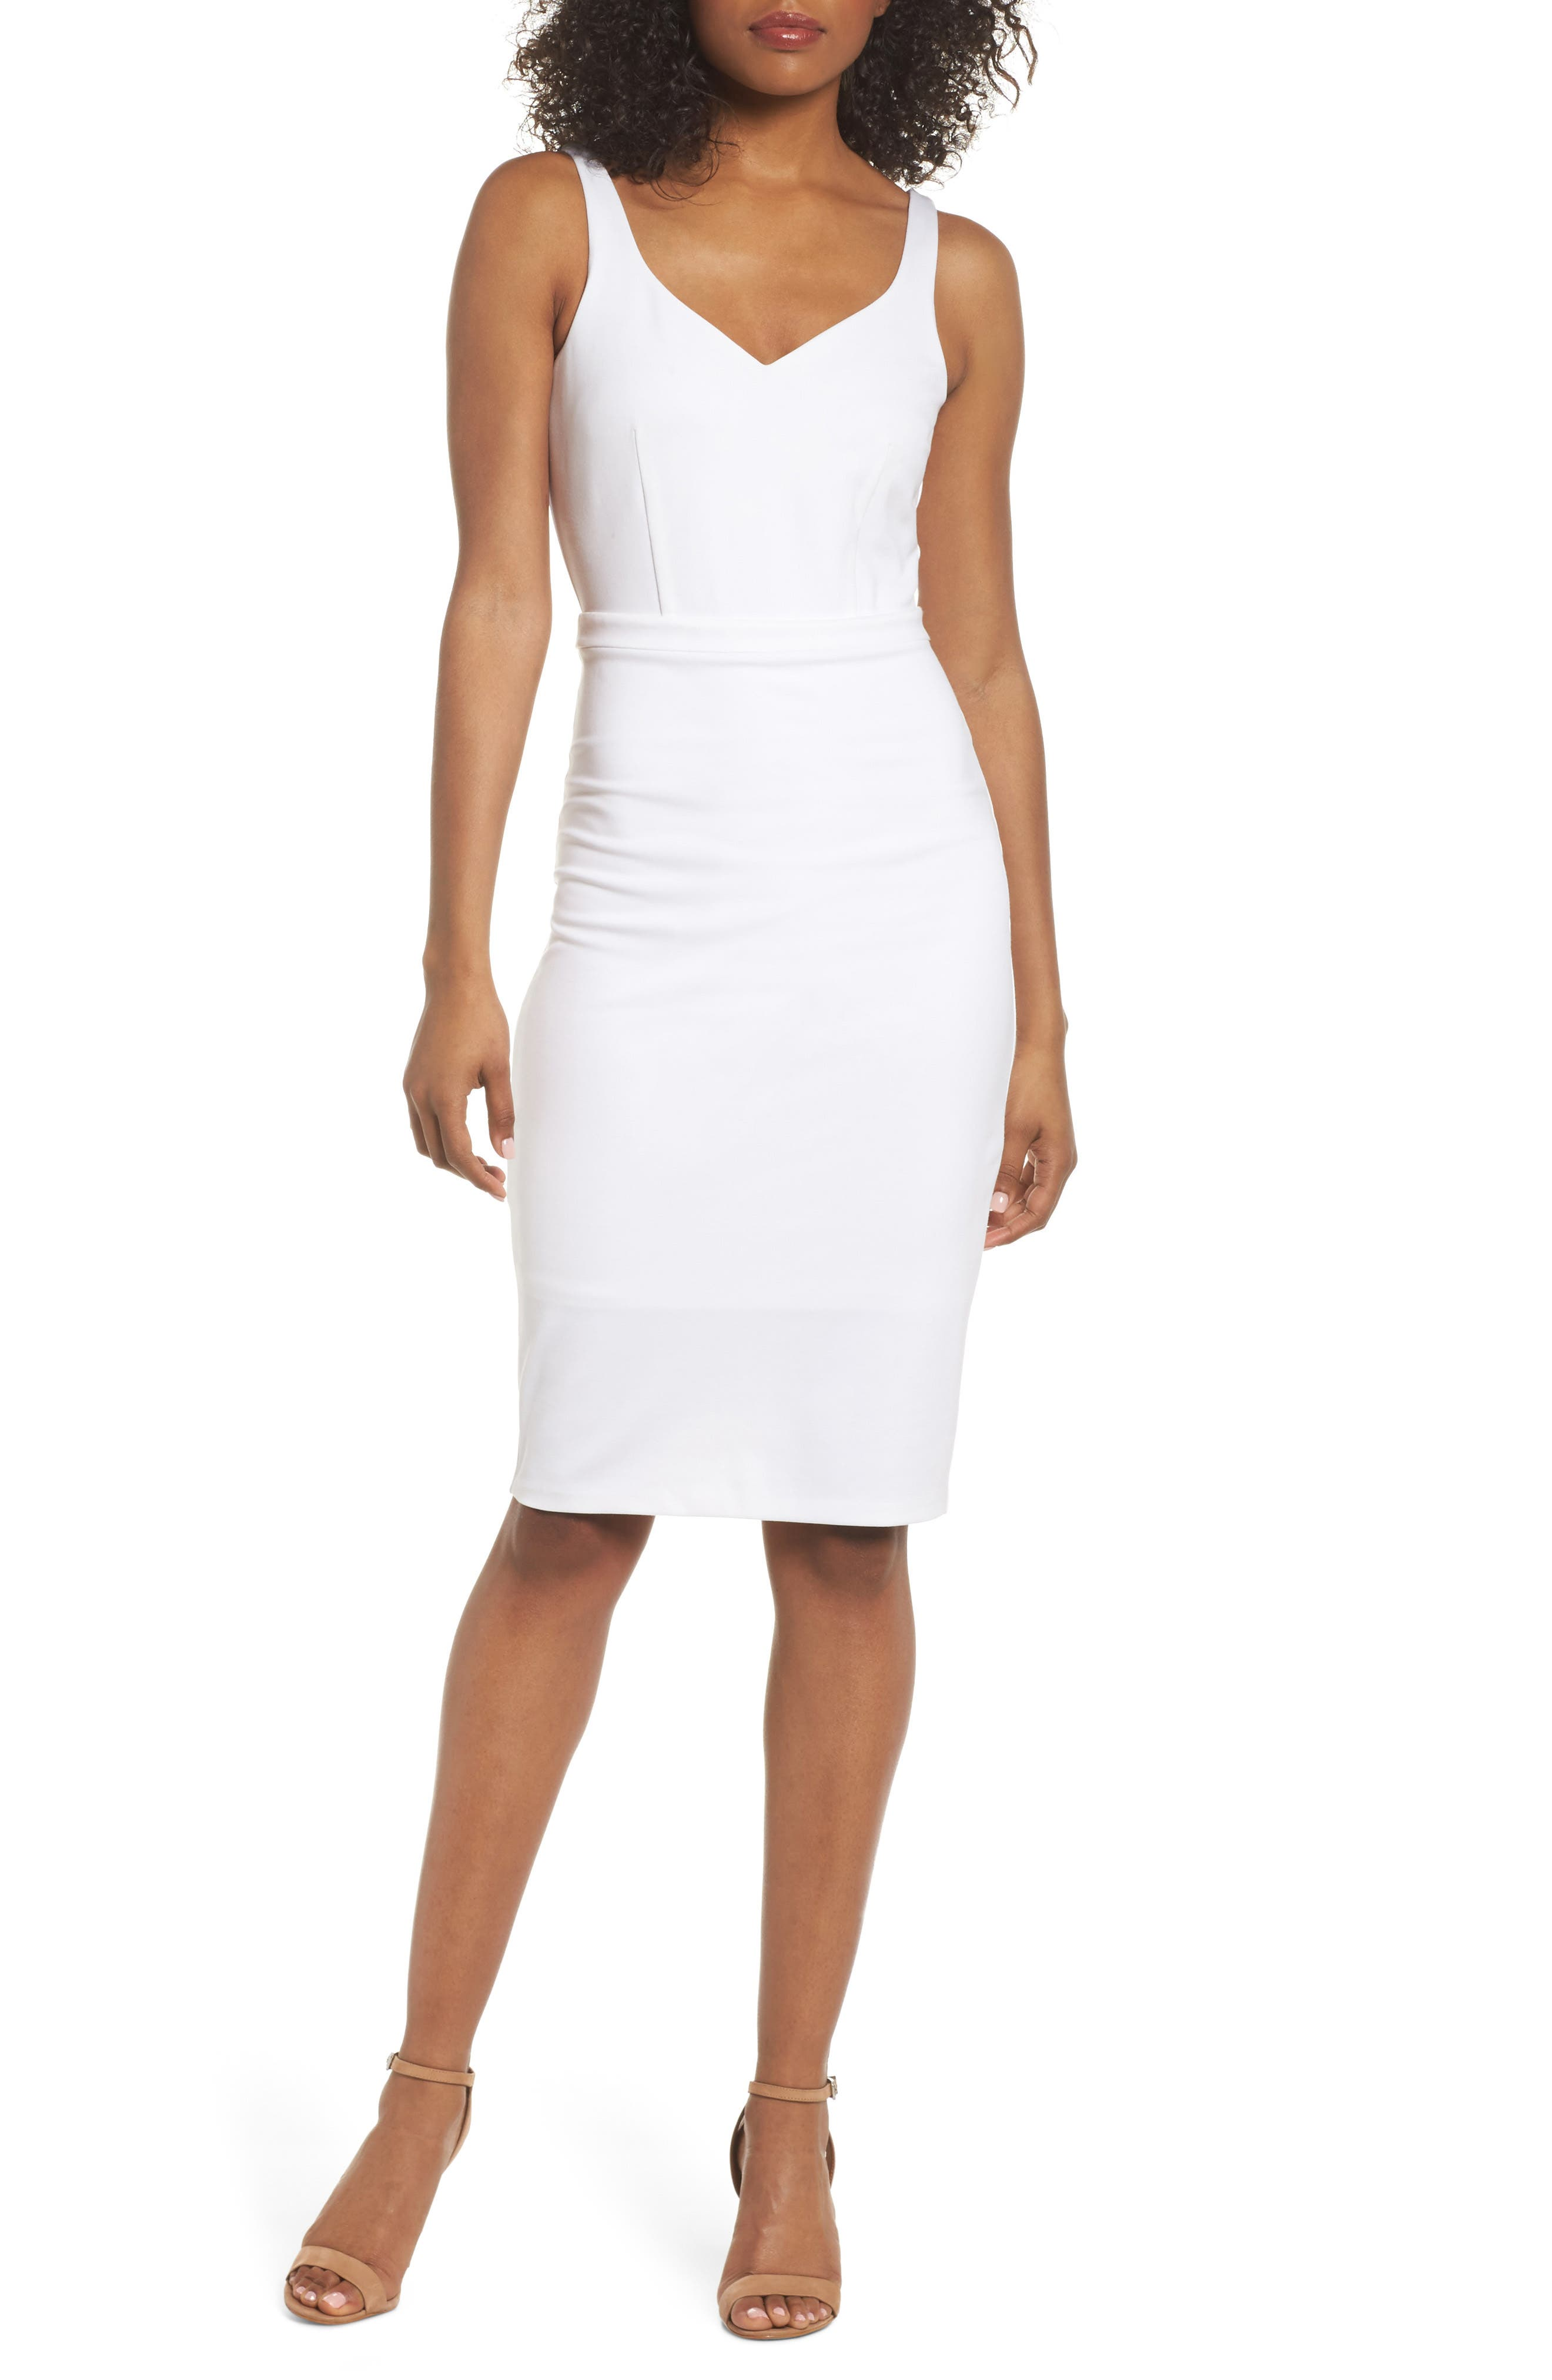 First Date Sheath Dress,                             Main thumbnail 1, color,                             White